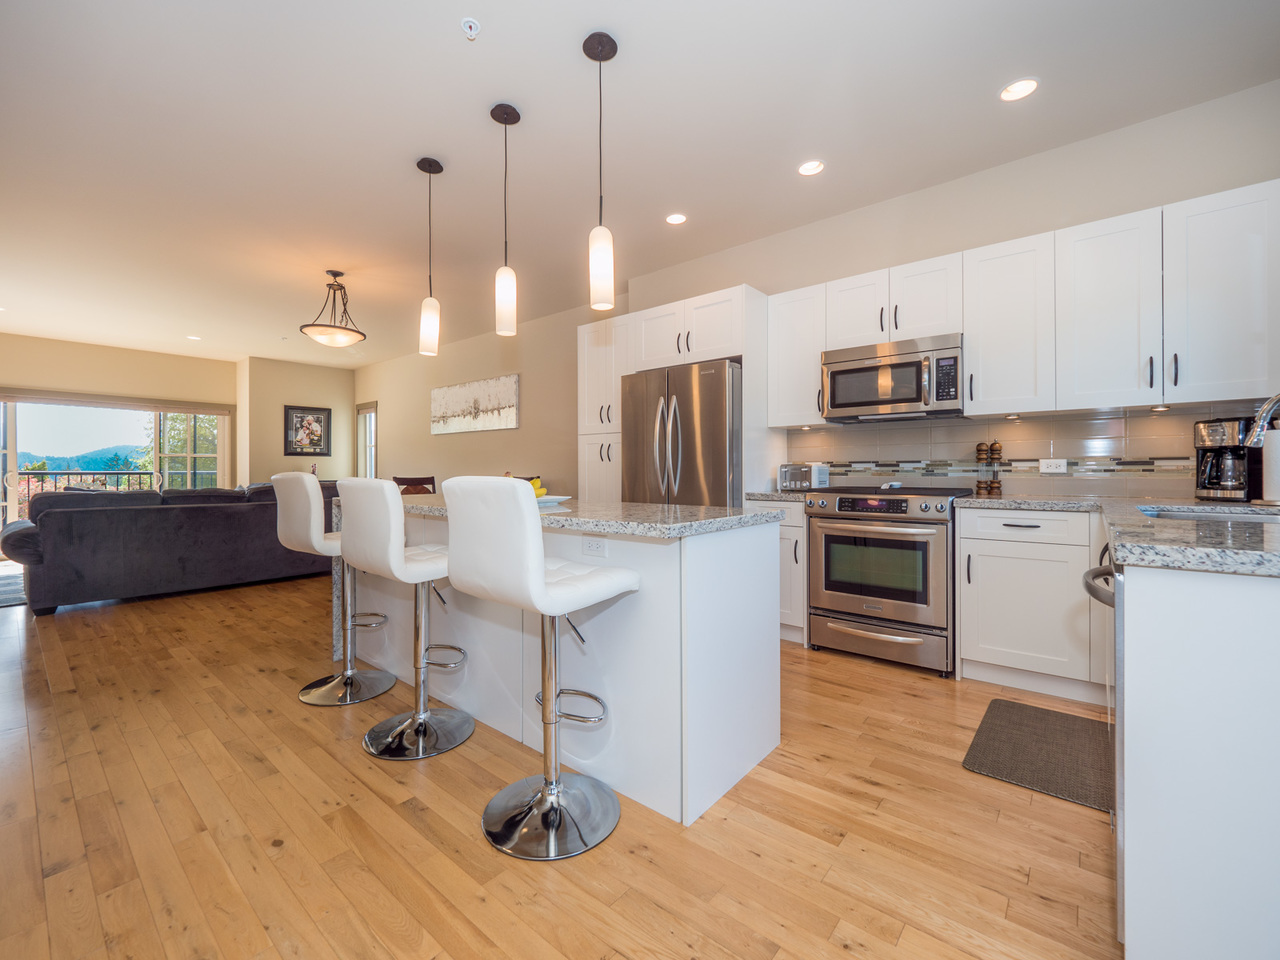 pg9d2499 at #2 - 655 Crucil Road, Gibsons & Area, Sunshine Coast